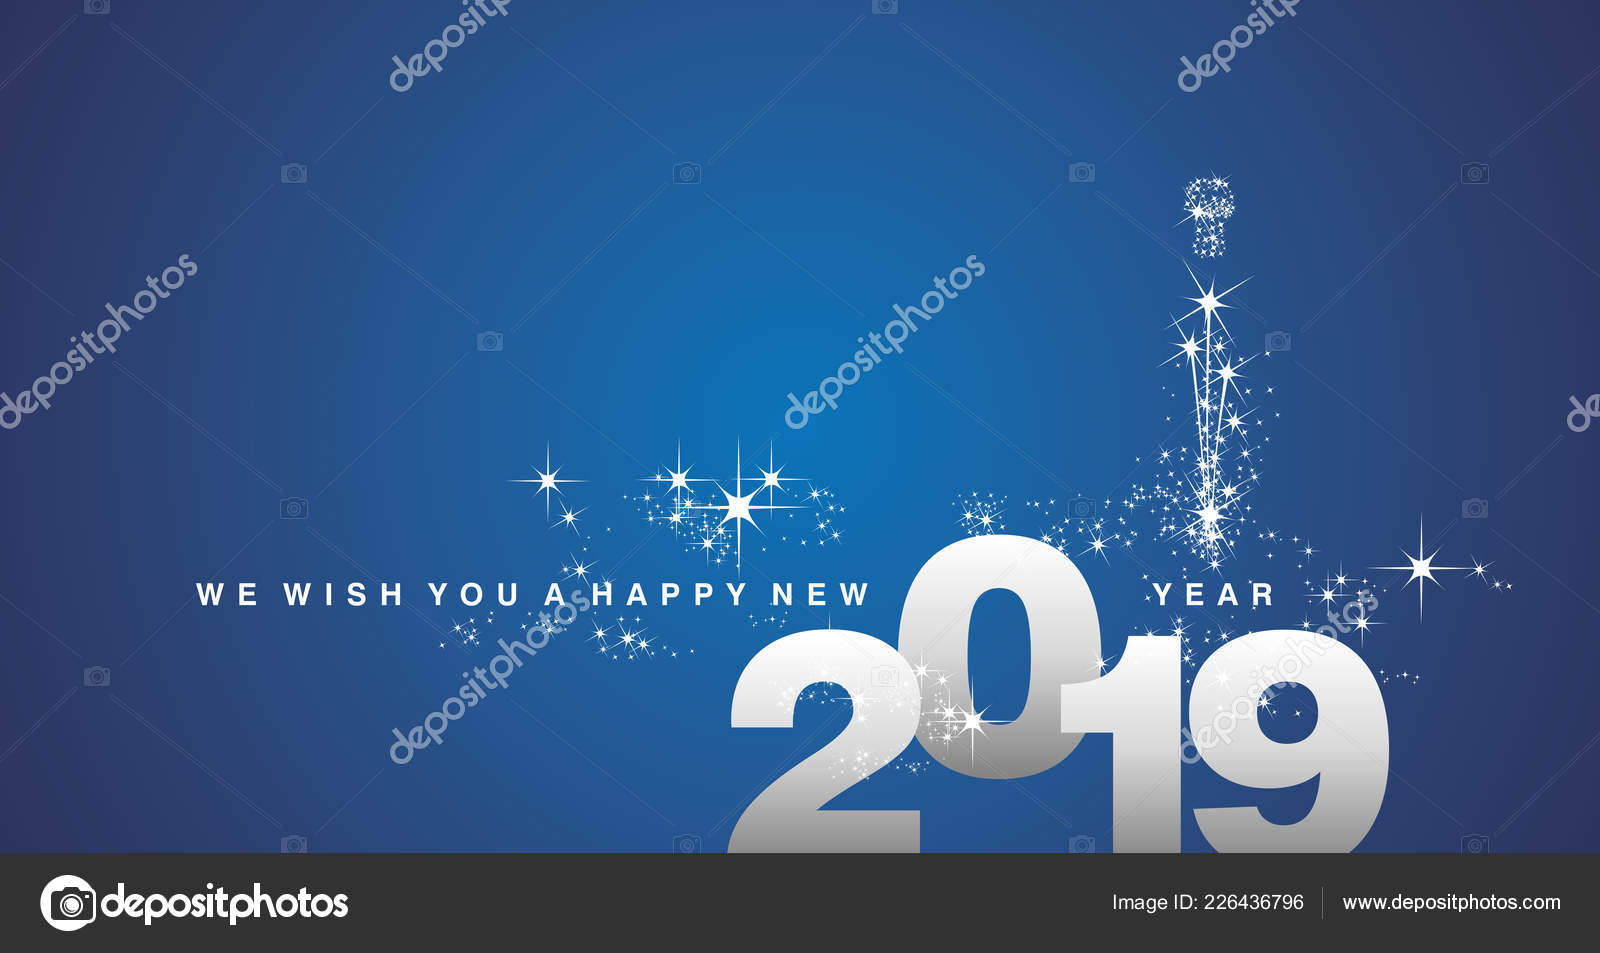 wish you happy new year 2019 silver blue greeting card stock vector